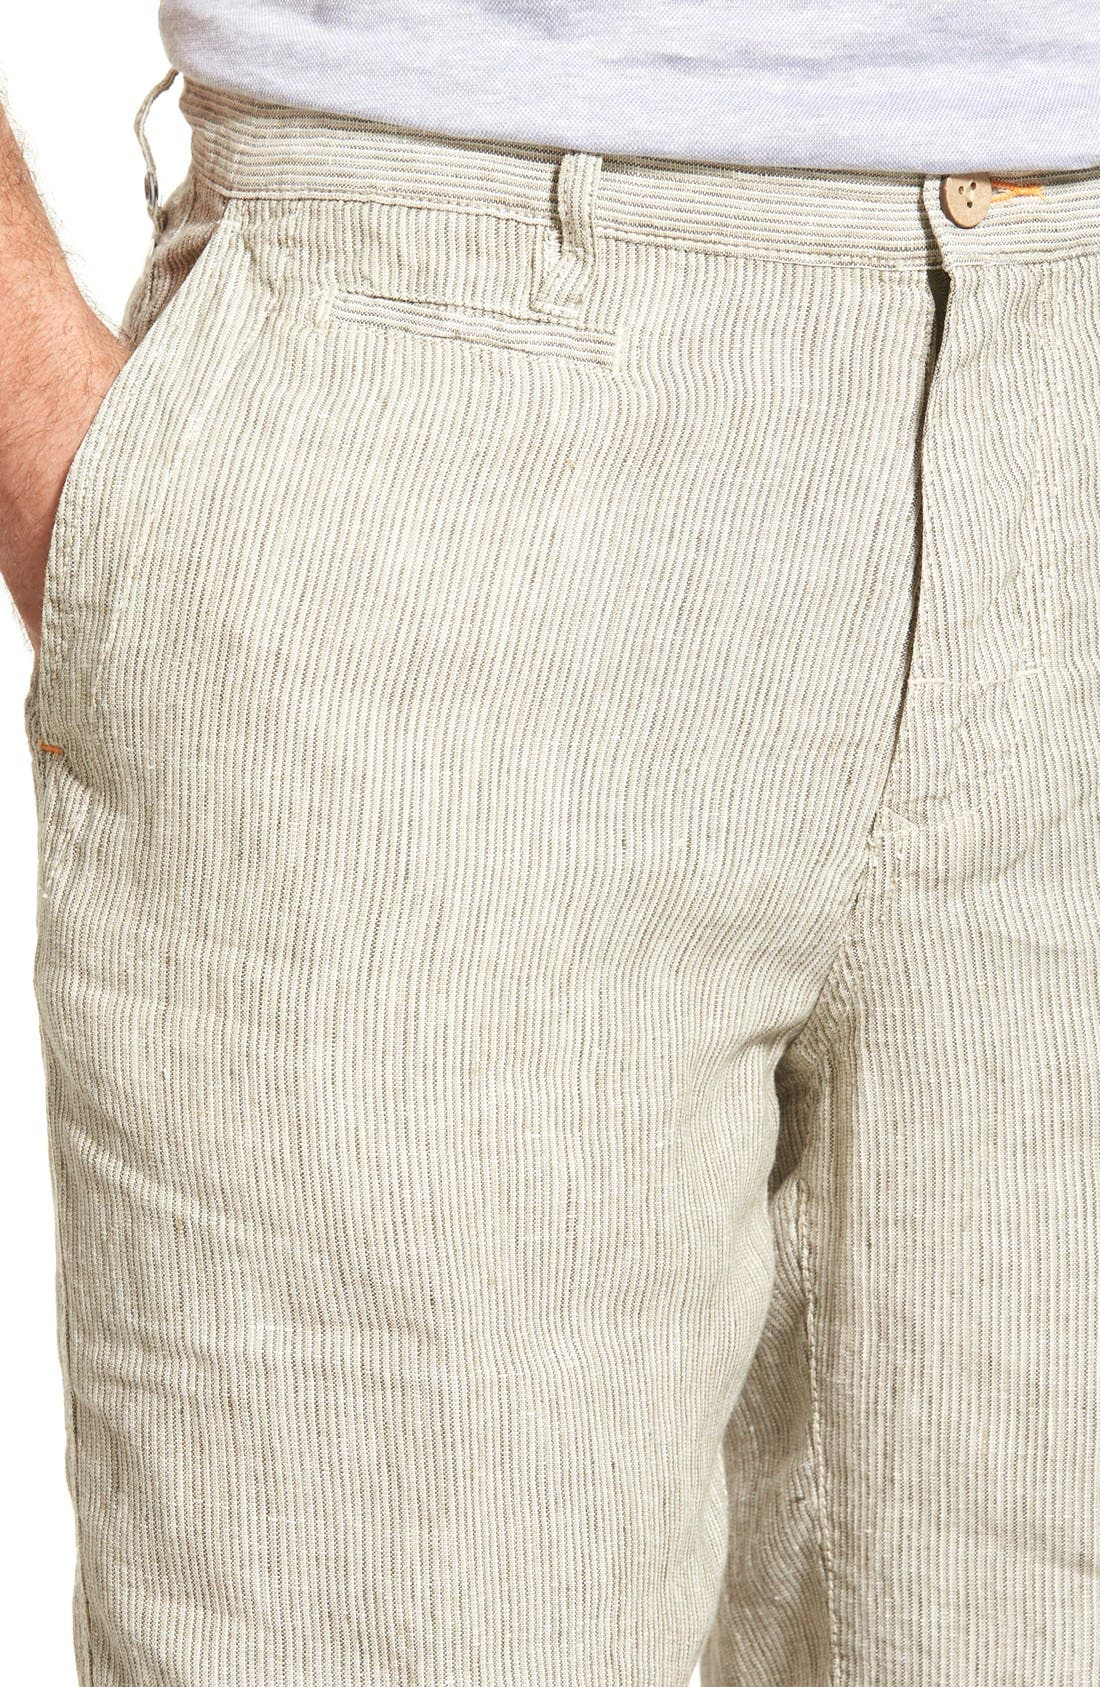 Alternate Image 4  - Tommy Bahama 'Line of the Times' Relaxed Fit Striped Linen Shorts